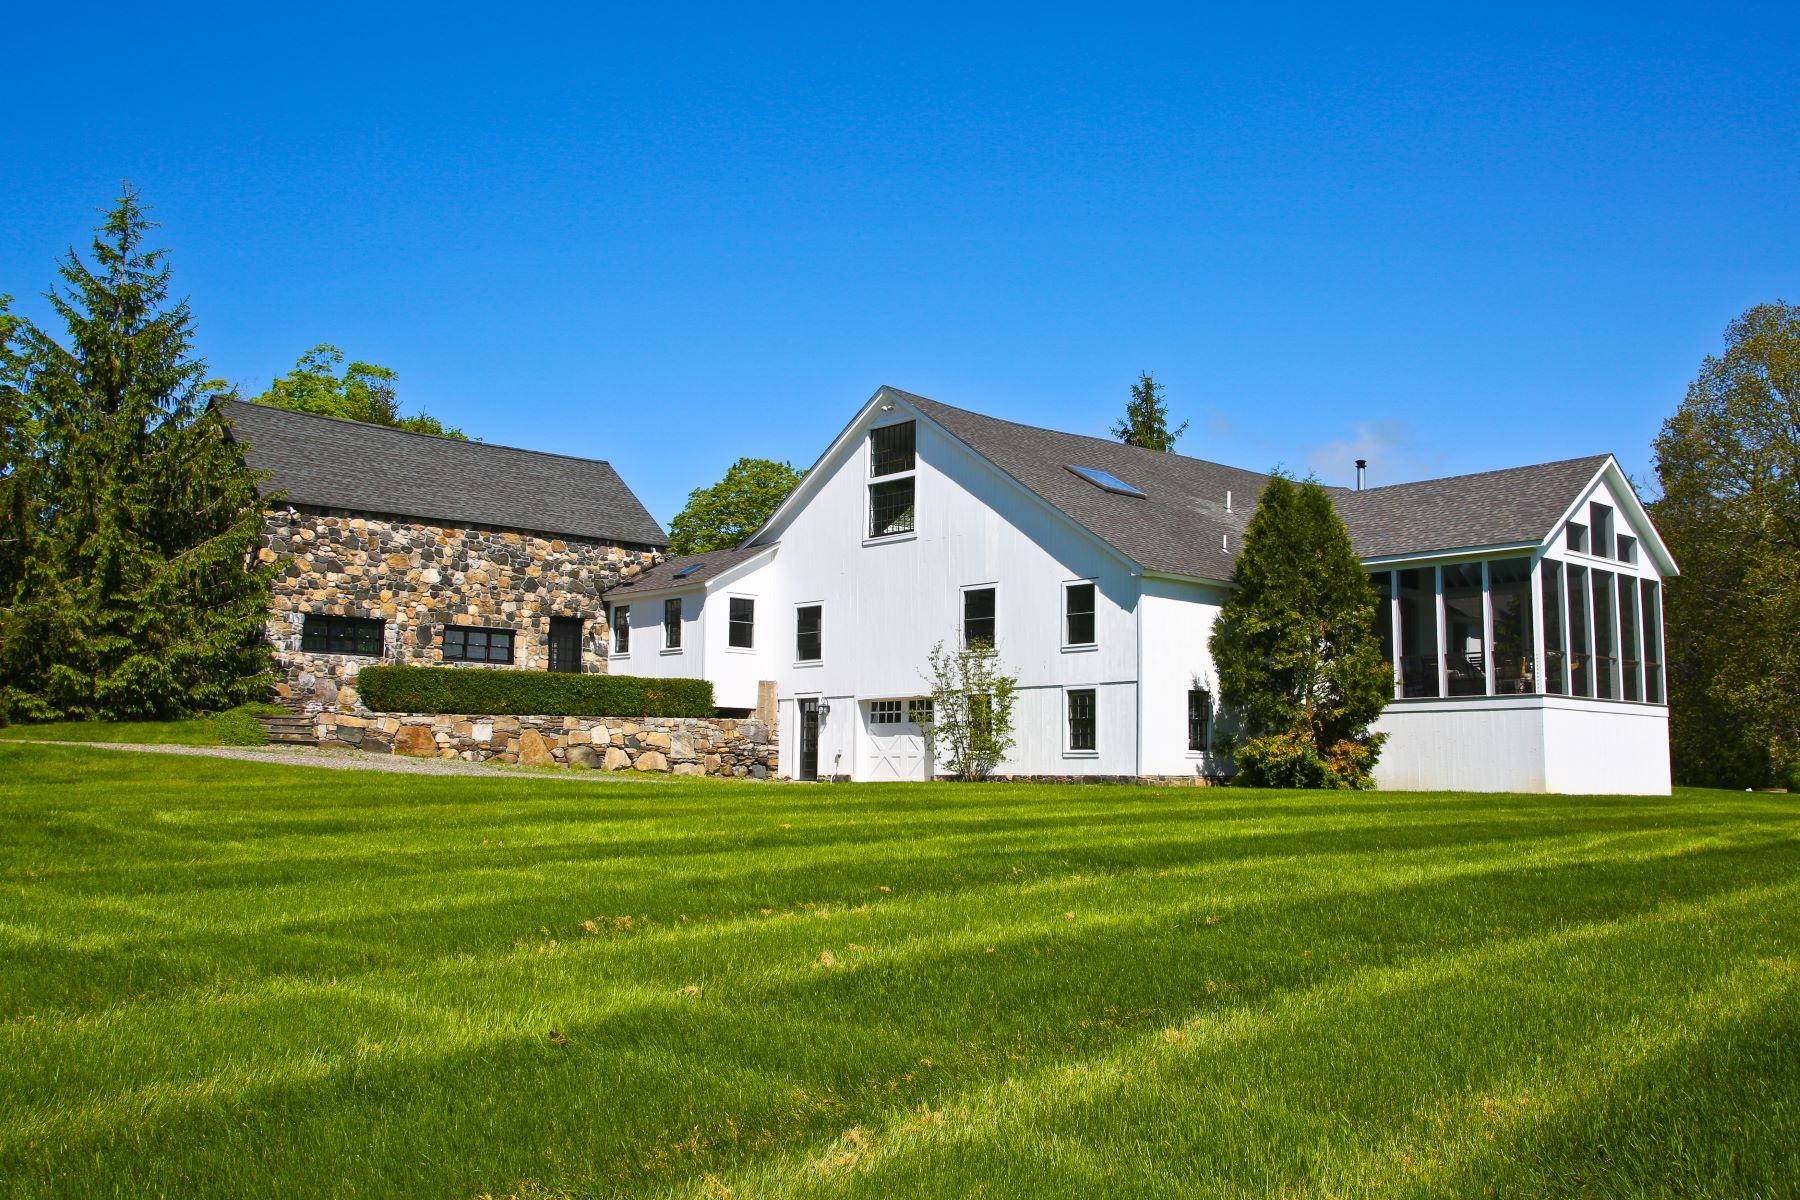 Single Family Homes for Sale at Historic 1750 Colonial Home 11 Cornwall Road, Warren, Connecticut 06754 United States